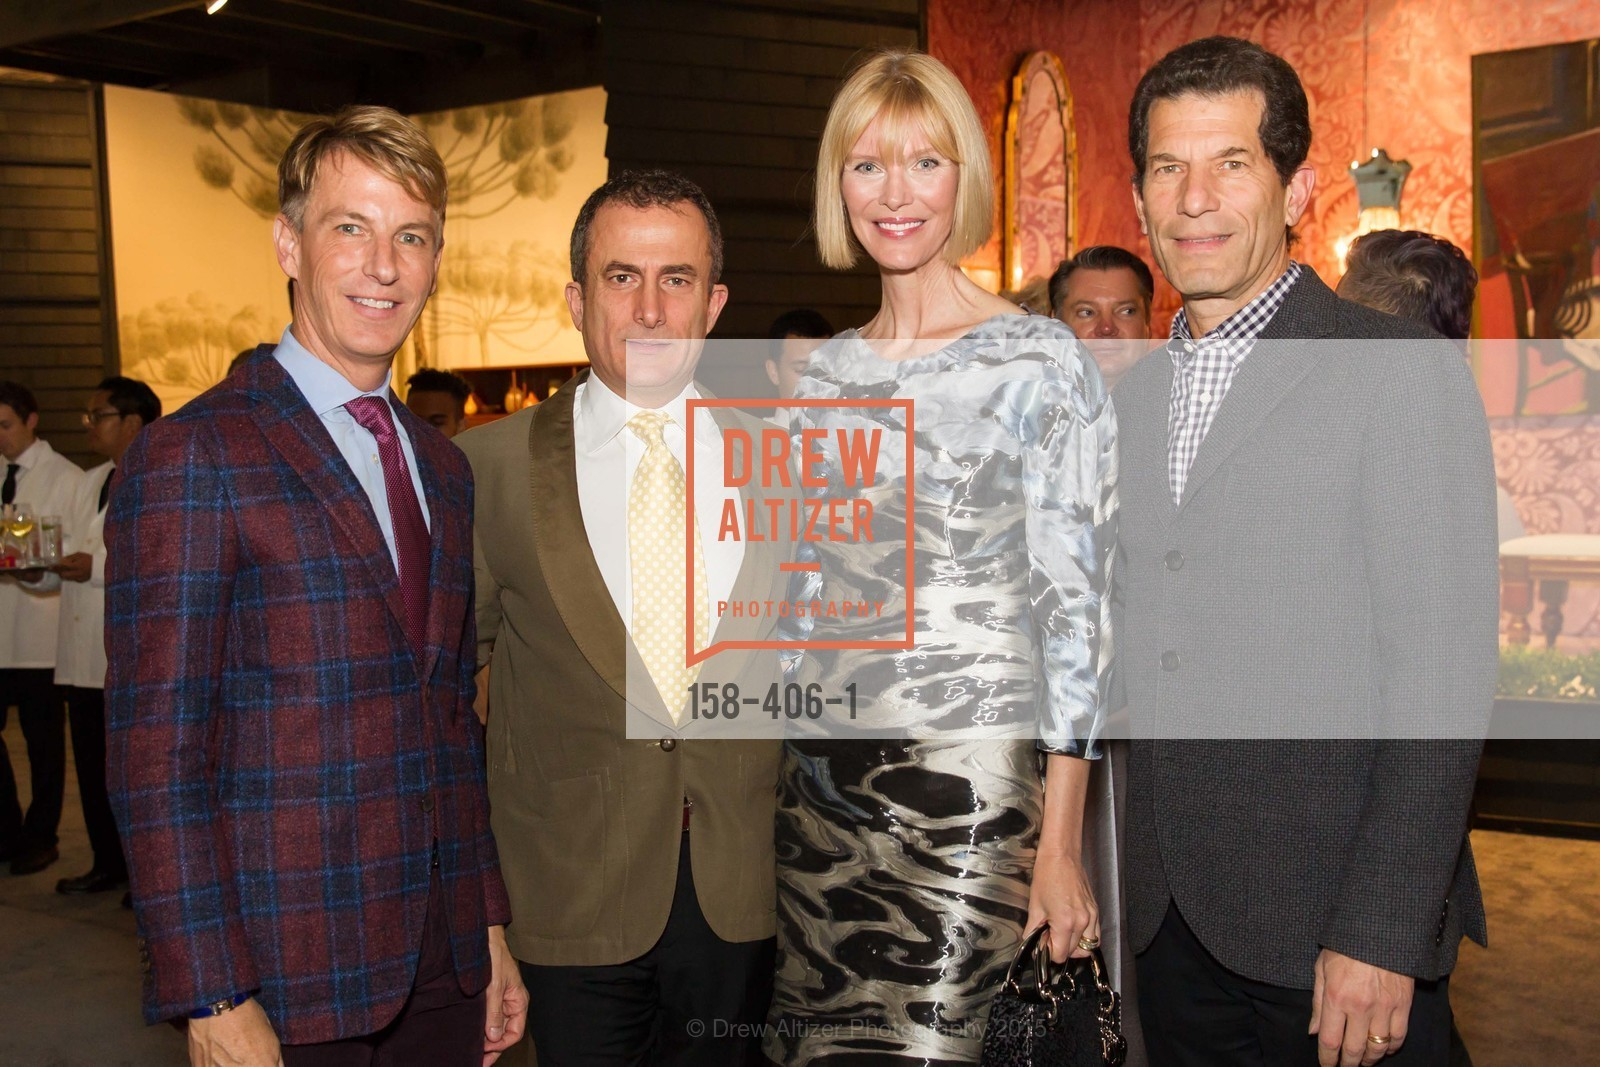 Jack Calhoun, Jorge Maumer, Karen Richardson, John Rubinstein, The San Francisco Fall Antiques Show, Festival Pavilion, Fort Mason, October 21st, 2015,Drew Altizer, Drew Altizer Photography, full-service event agency, private events, San Francisco photographer, photographer California